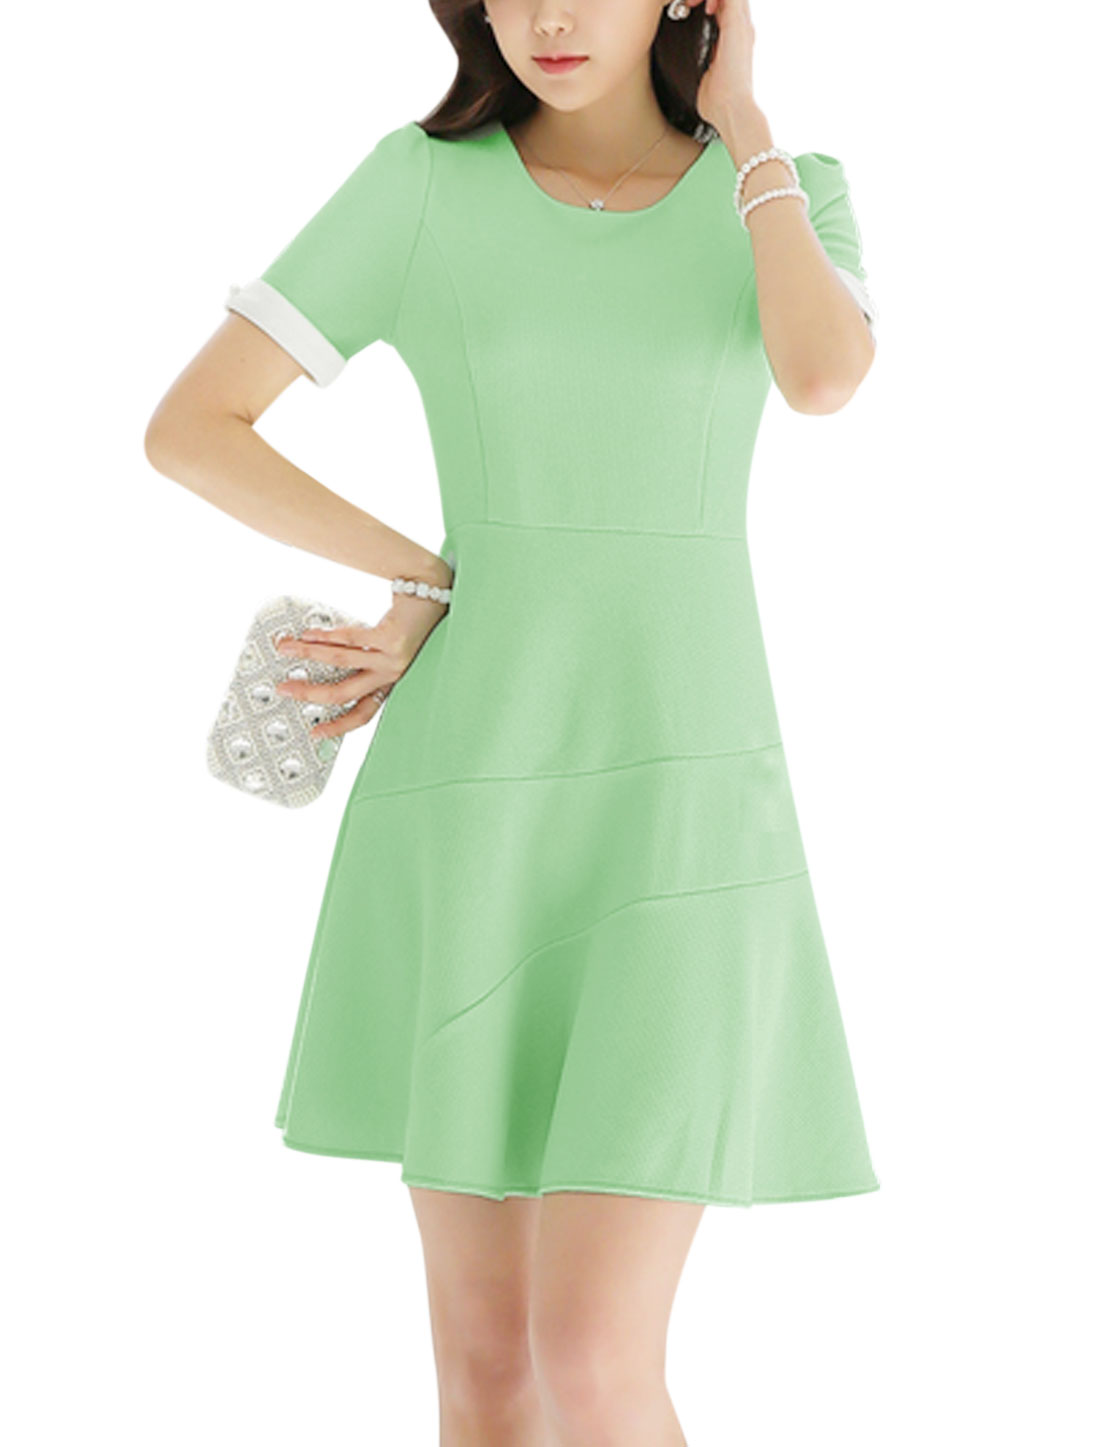 Women Short Sleeve Round Neck Texture Unlined Summer Dresses Mint M